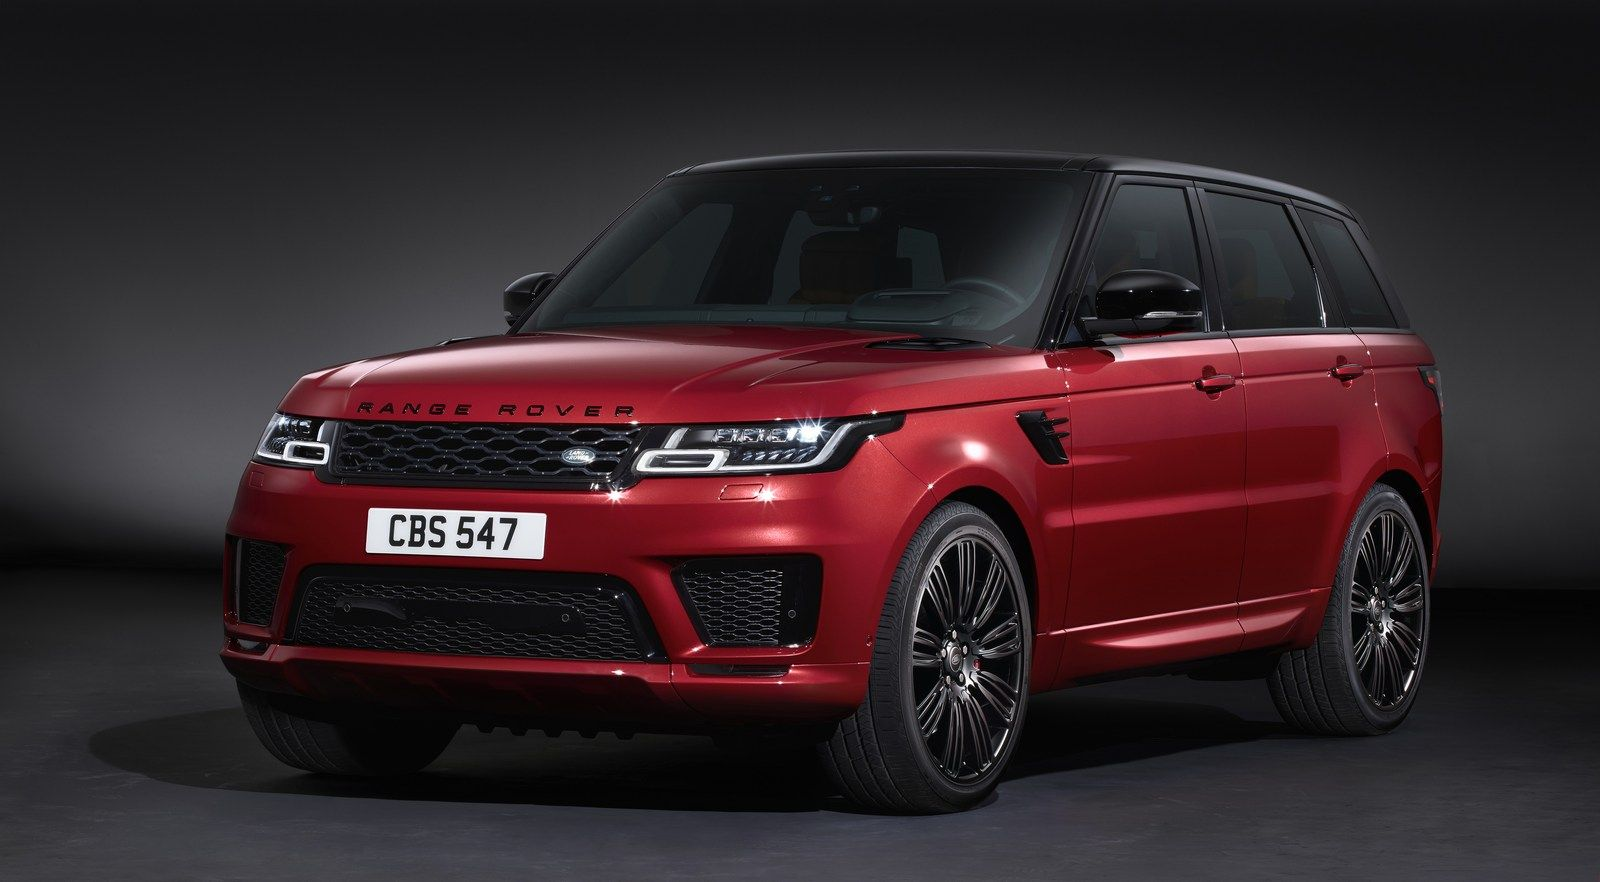 2018 Range Rover Sport Lineup Revealed With New Plug In Hybrid And More Powerful Svr Carscoops Range Rover Sport Autobiography Range Rover Sport 2018 Land Rover Sport